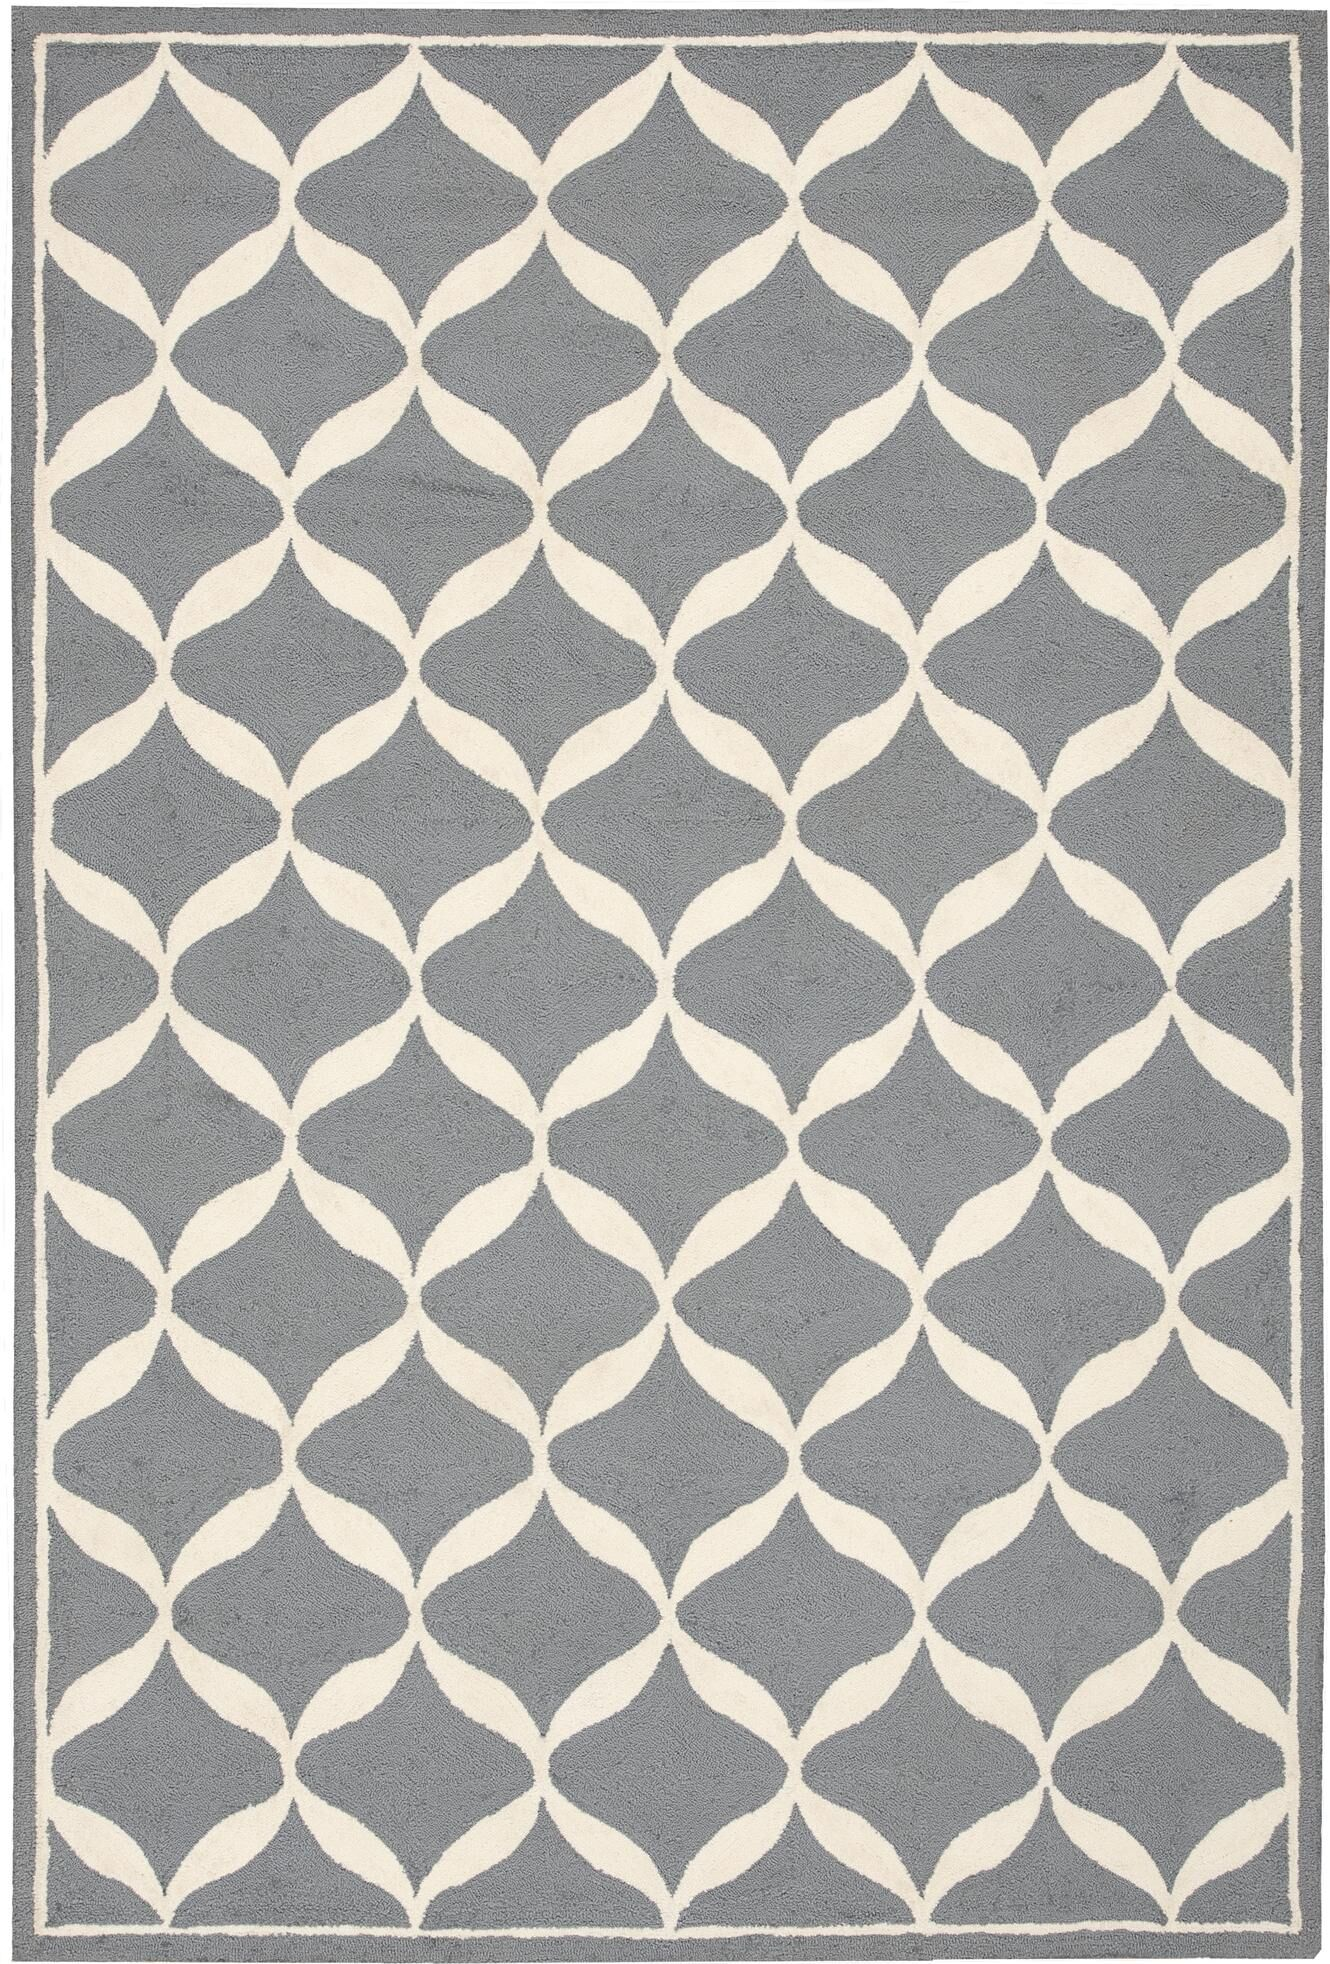 Sidonie Hand-Tufted Slate/White Area Rug Rug Size: Rectangle 5' x 7'